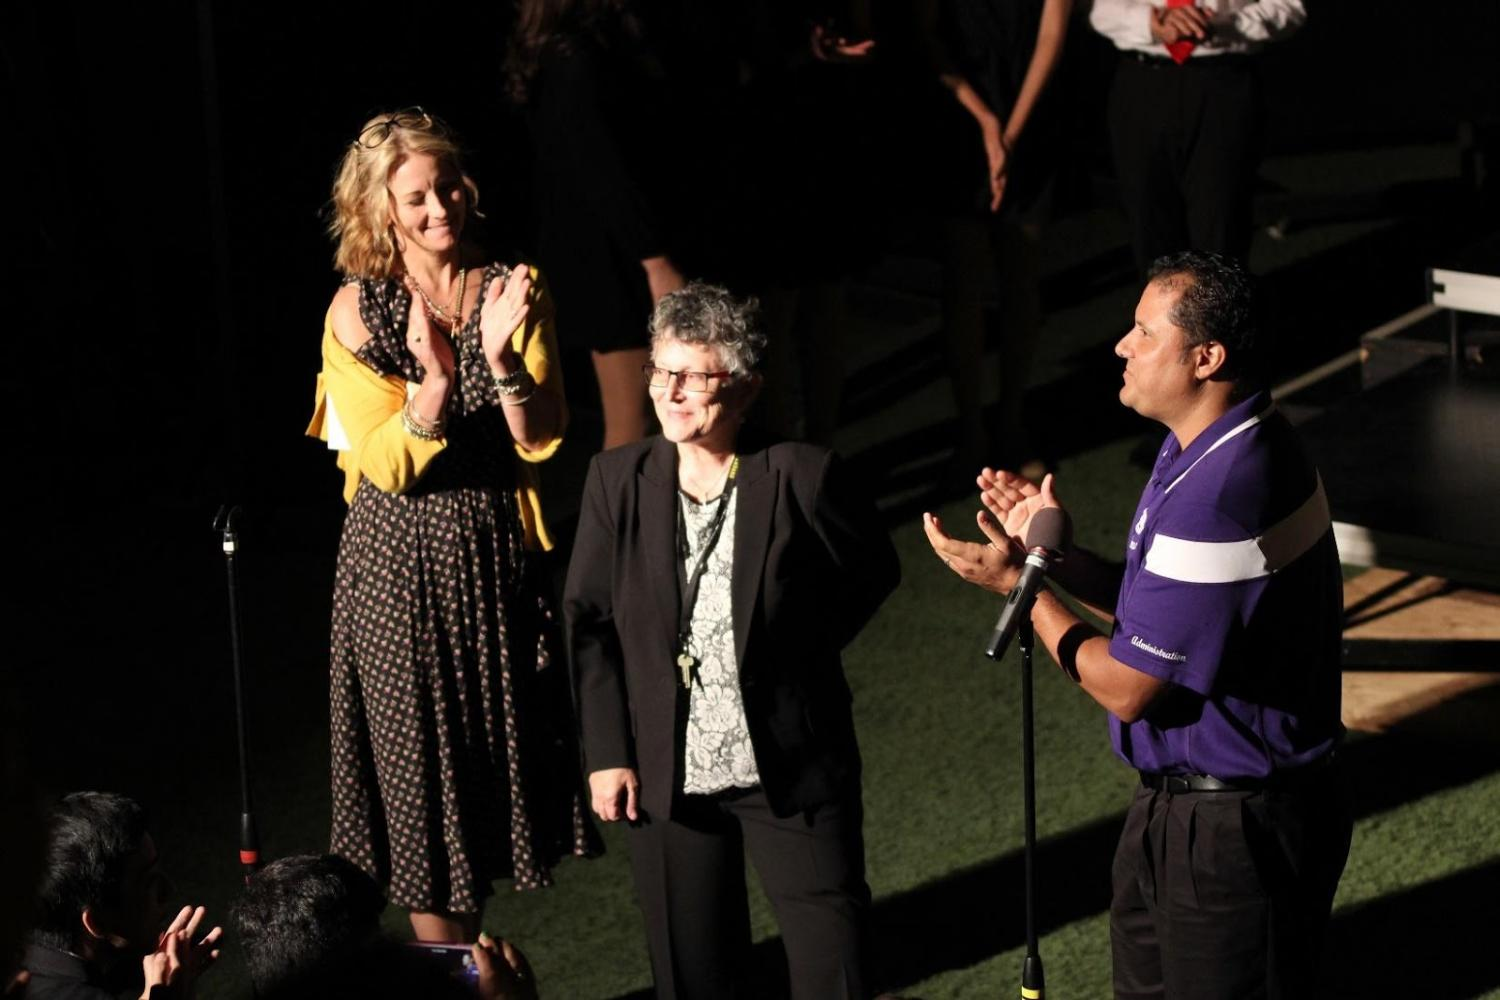 Choir teacher Patty Breitag was celebrated at her final concert last Thursday before she entered retirement on Friday.